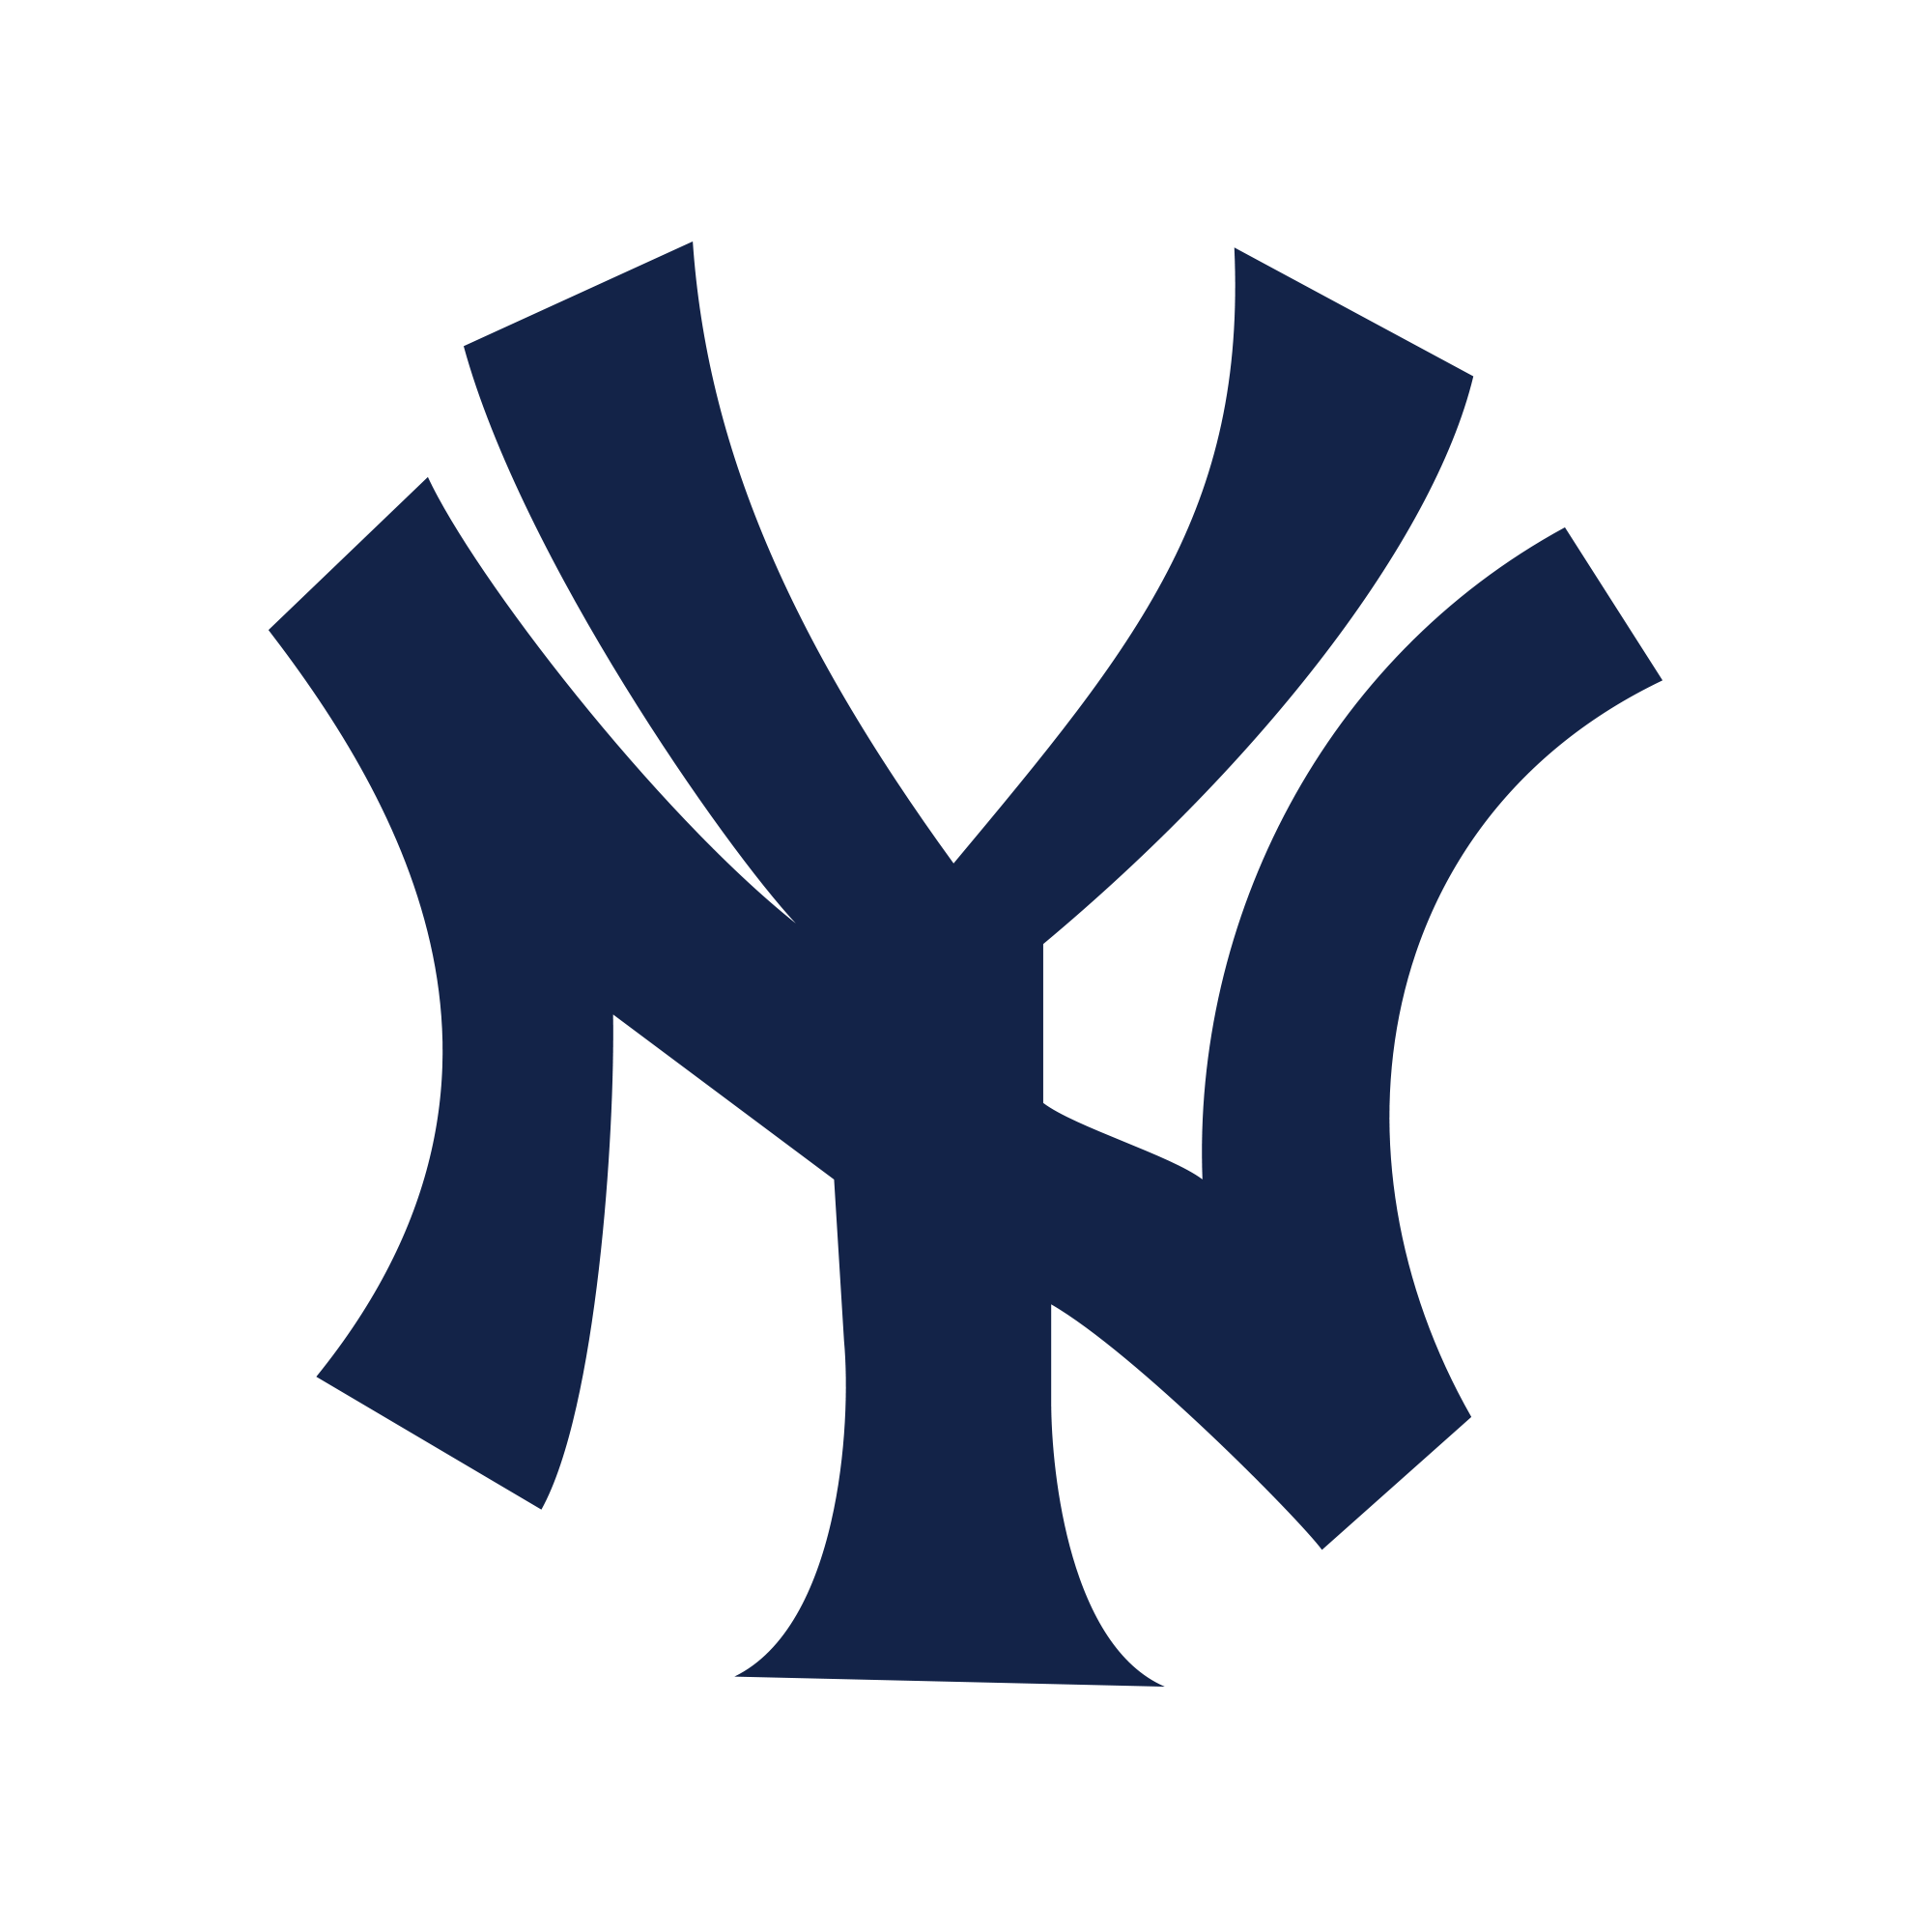 Destiny greed monster clipart. Clipartfest new york yankees